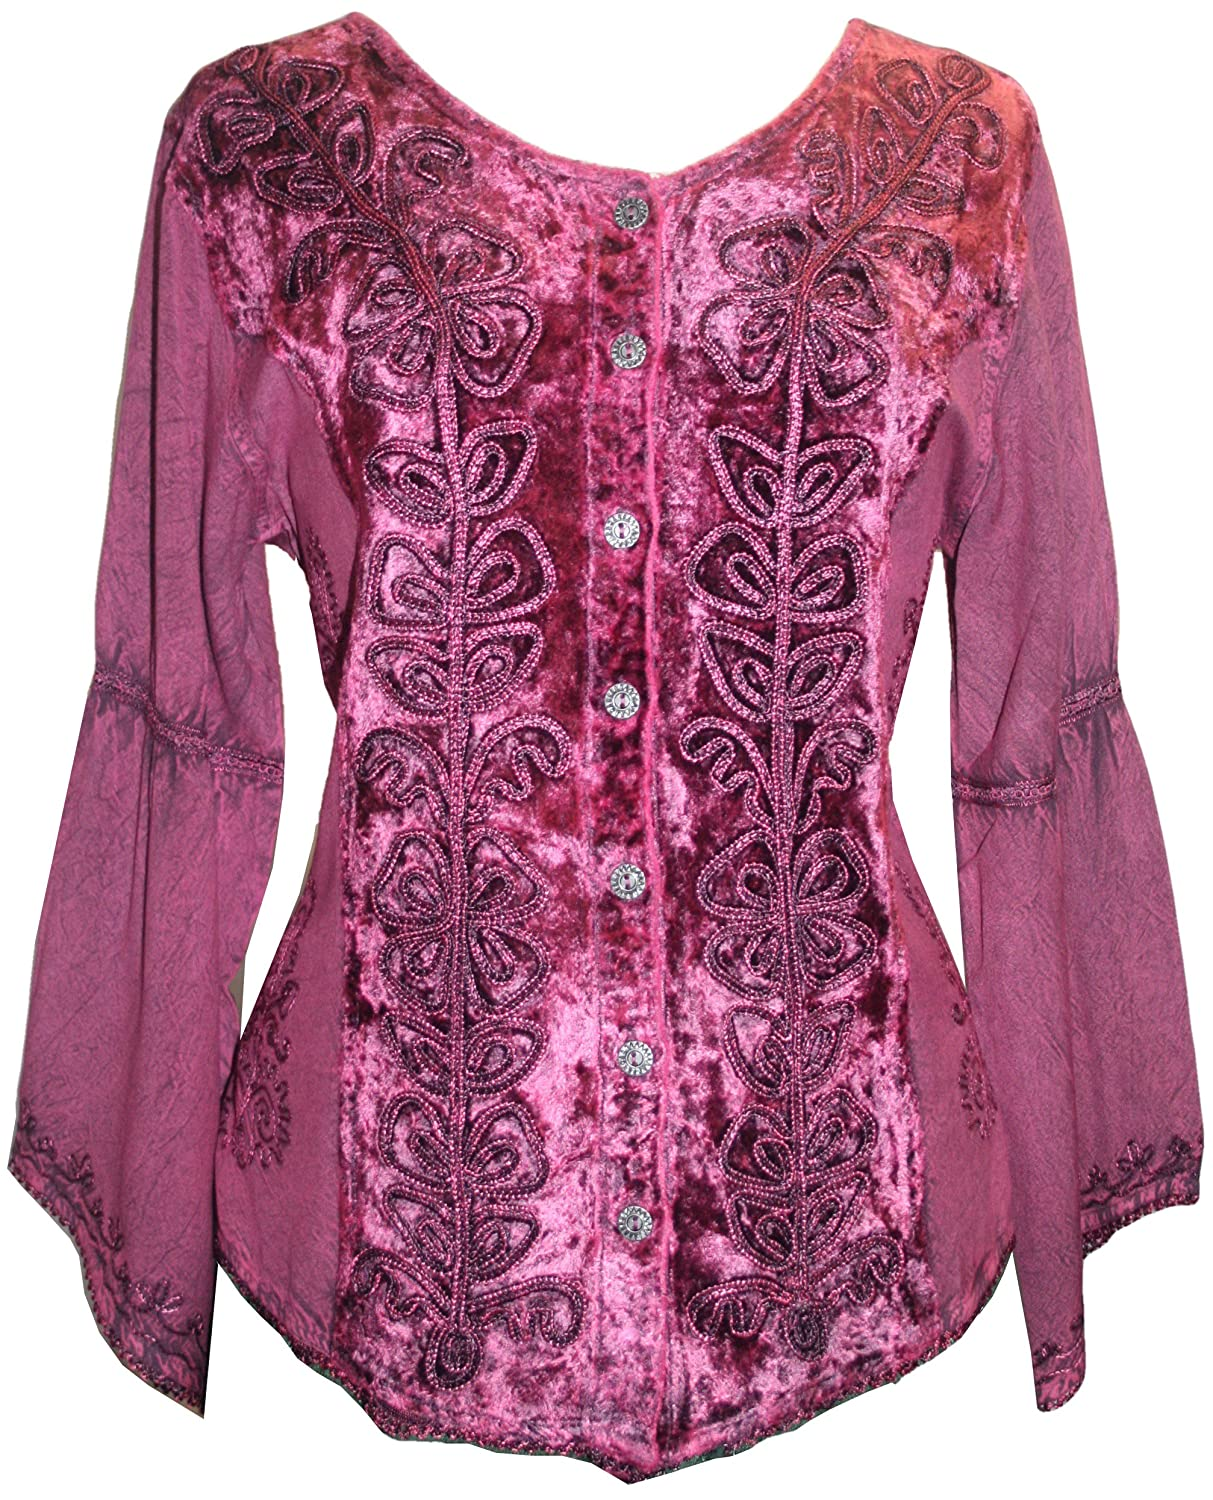 504 B Womens Renaissance Vintage Gothic Velvet Button Down Embroidered Shirt Top Blouse